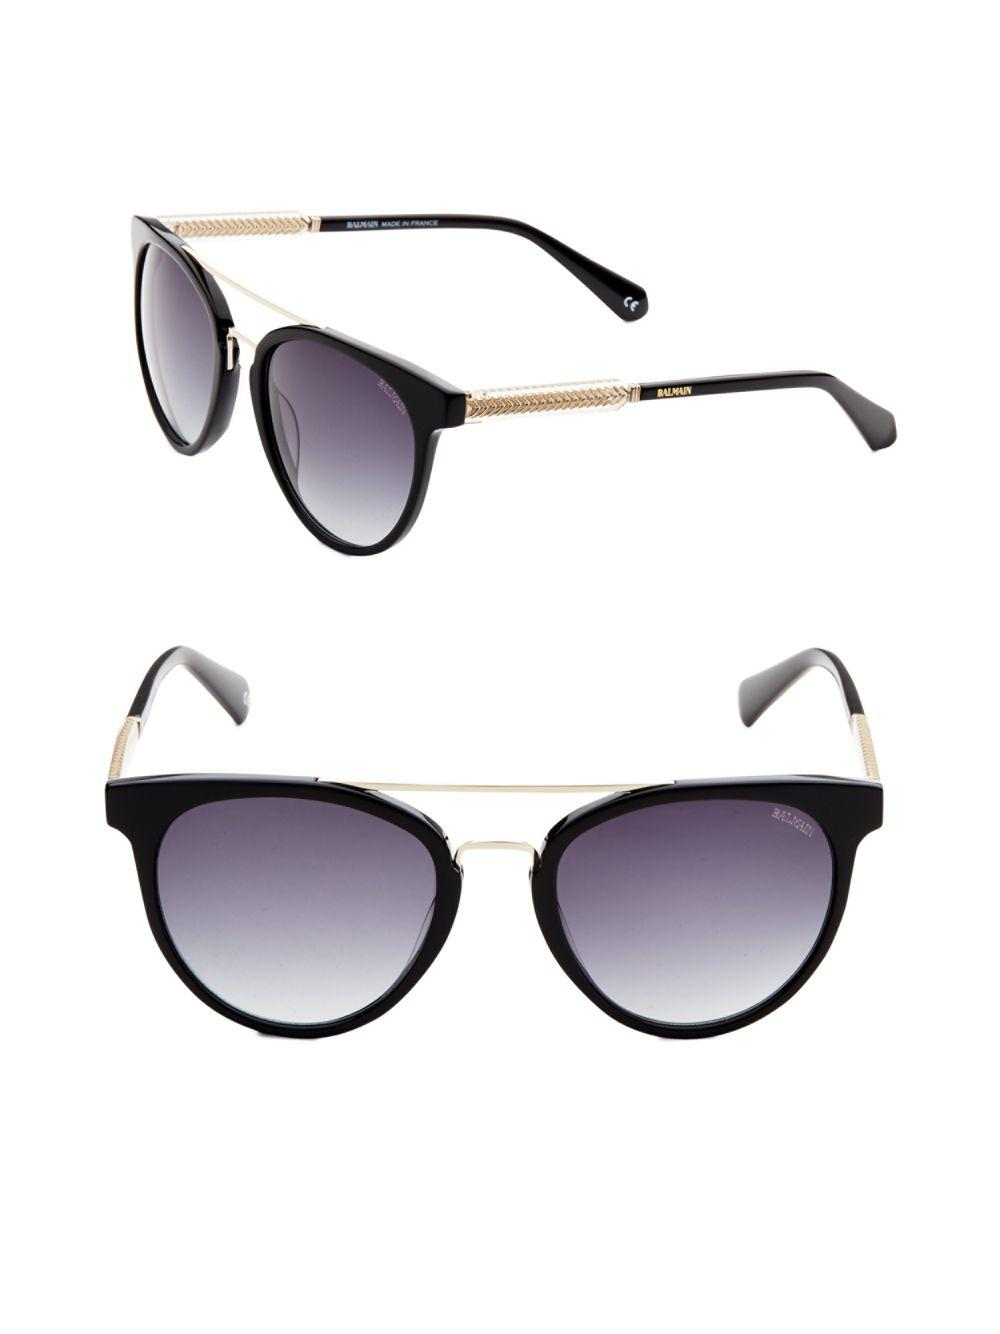 db0c8cd01e Lyst balmain gradient aviator sunglasses in black jpg 1000x1334 Balmain  sunglasses